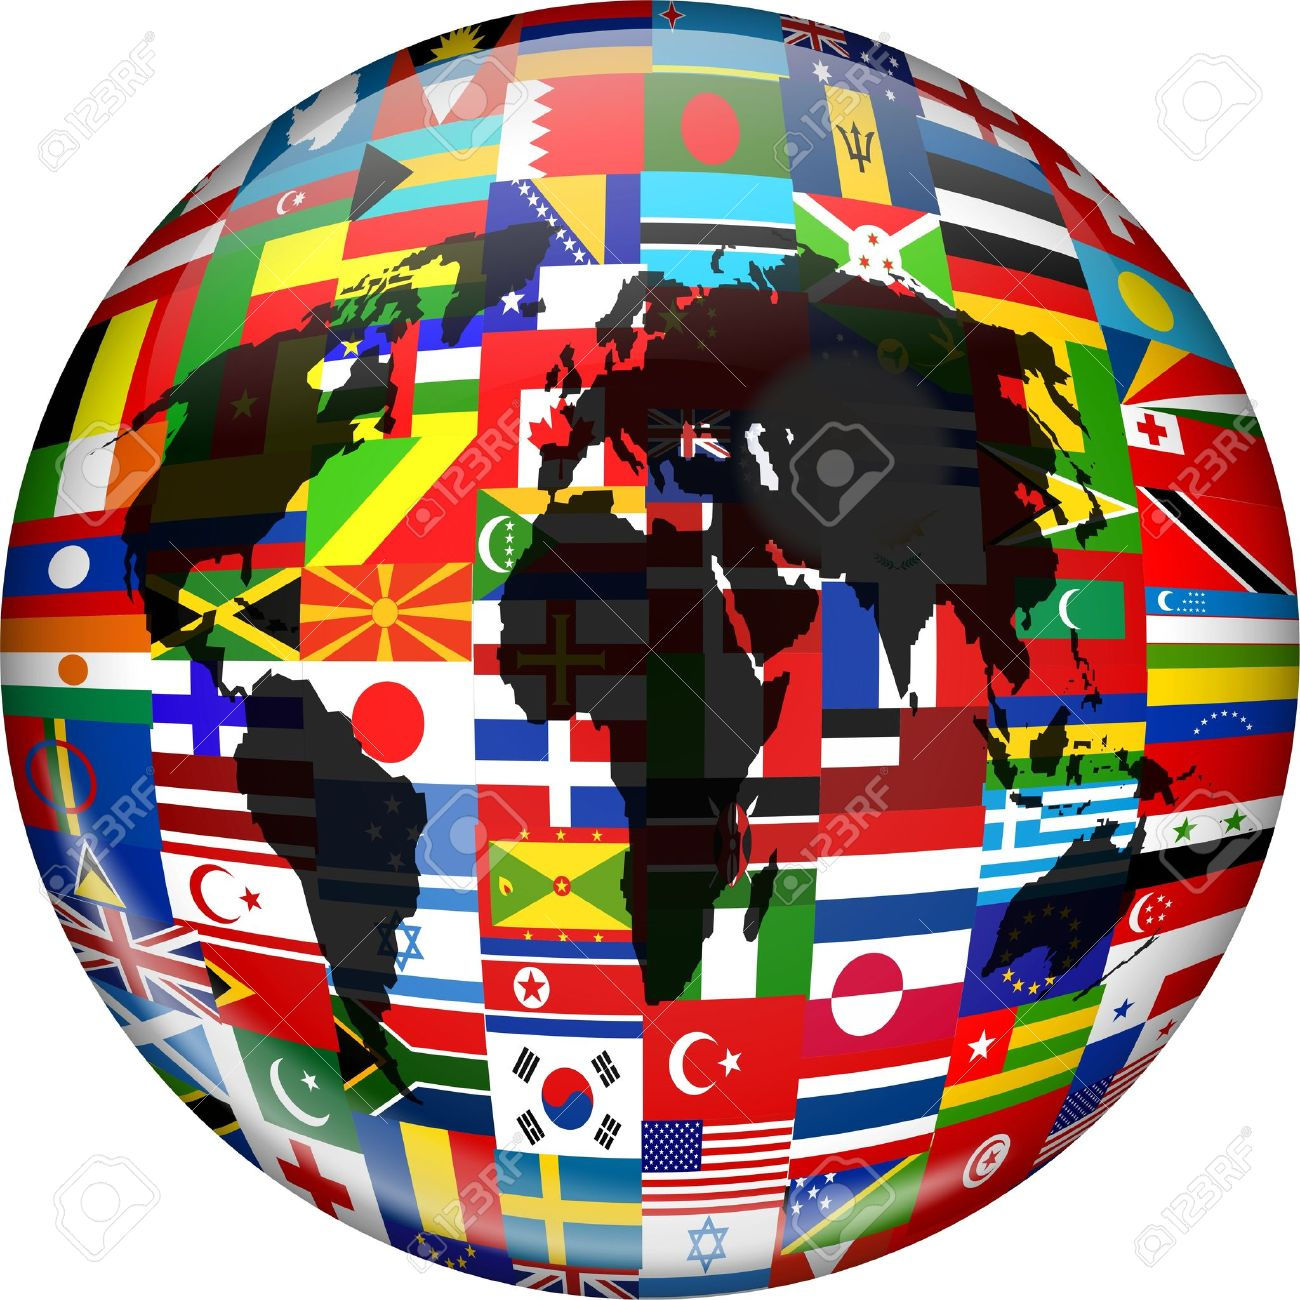 Colourful globe illustration made up of flags from all over the world and incorporating a world map. Stock Illustration - 8912838